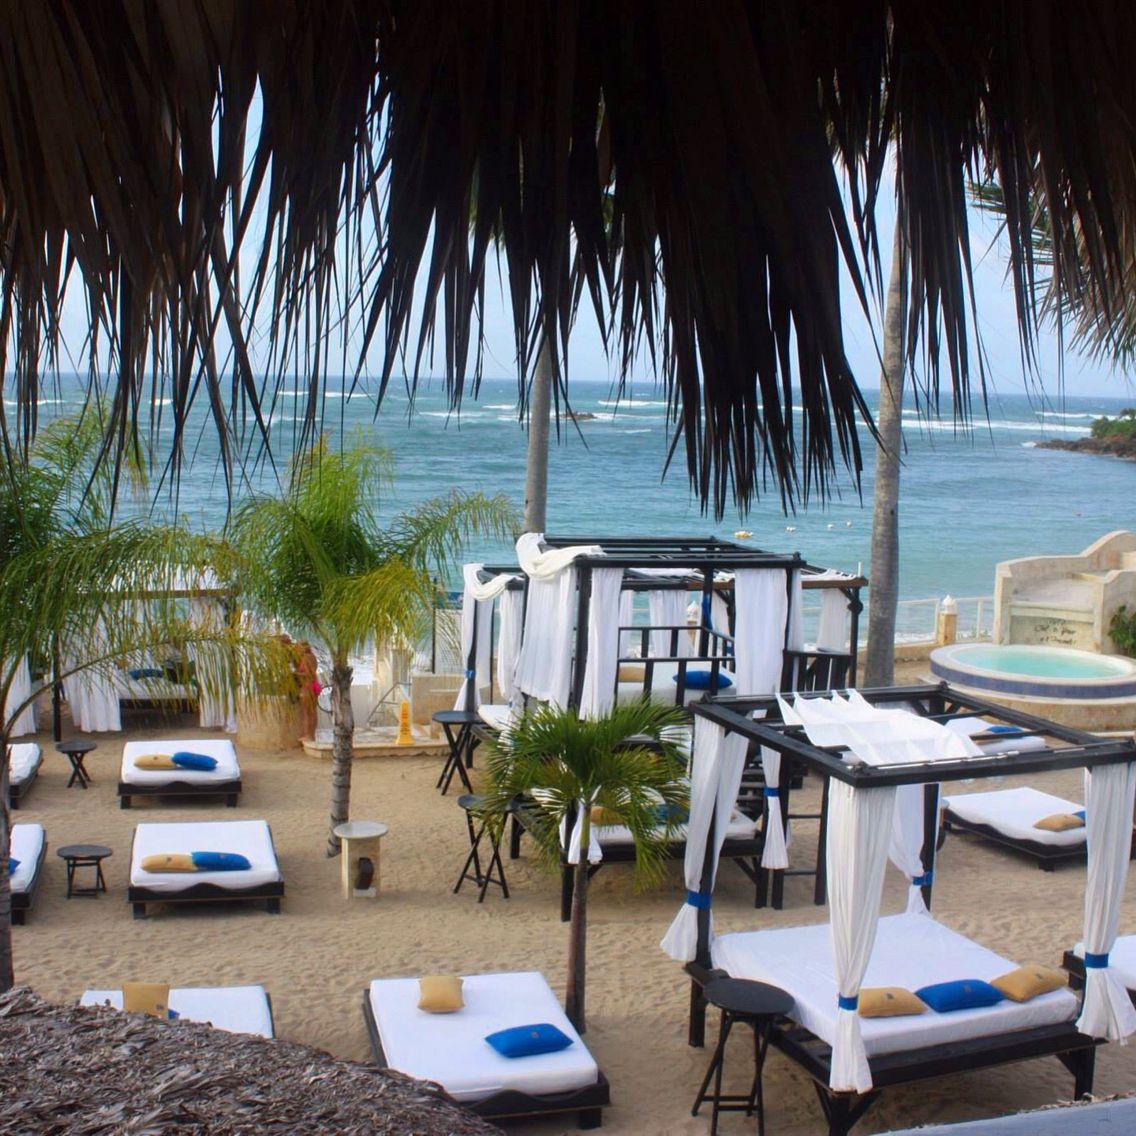 Vip Beach At The Lifestyles Resort In Puerto Plata